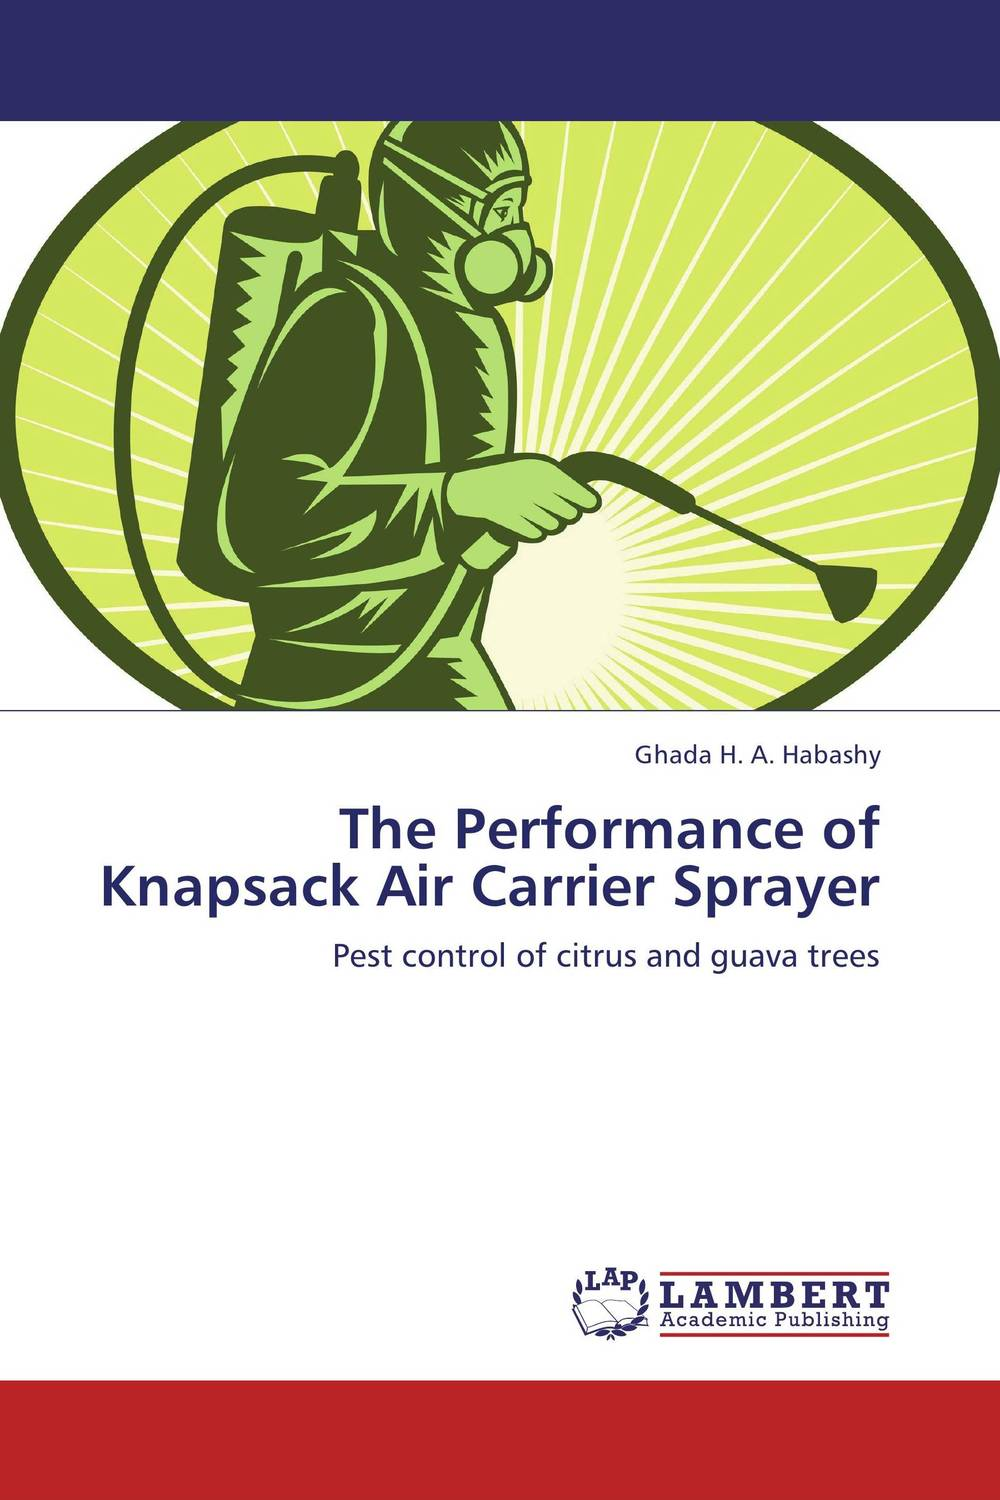 The Performance of Knapsack Air Carrier Sprayer coloring of trees